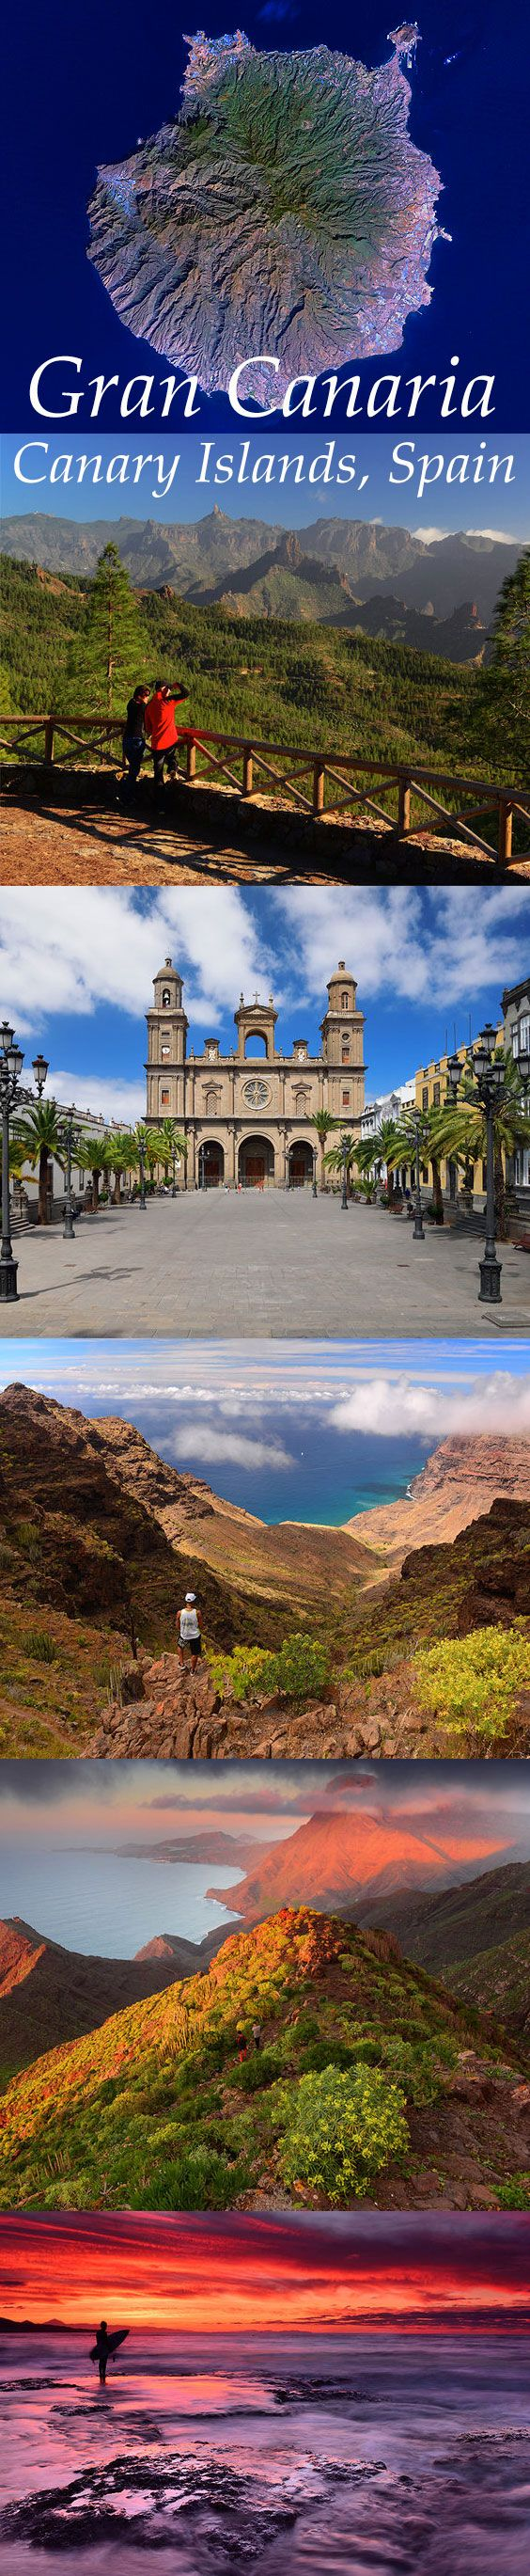 The different landscapes of Gran Canaria, Canary Islands, Spain